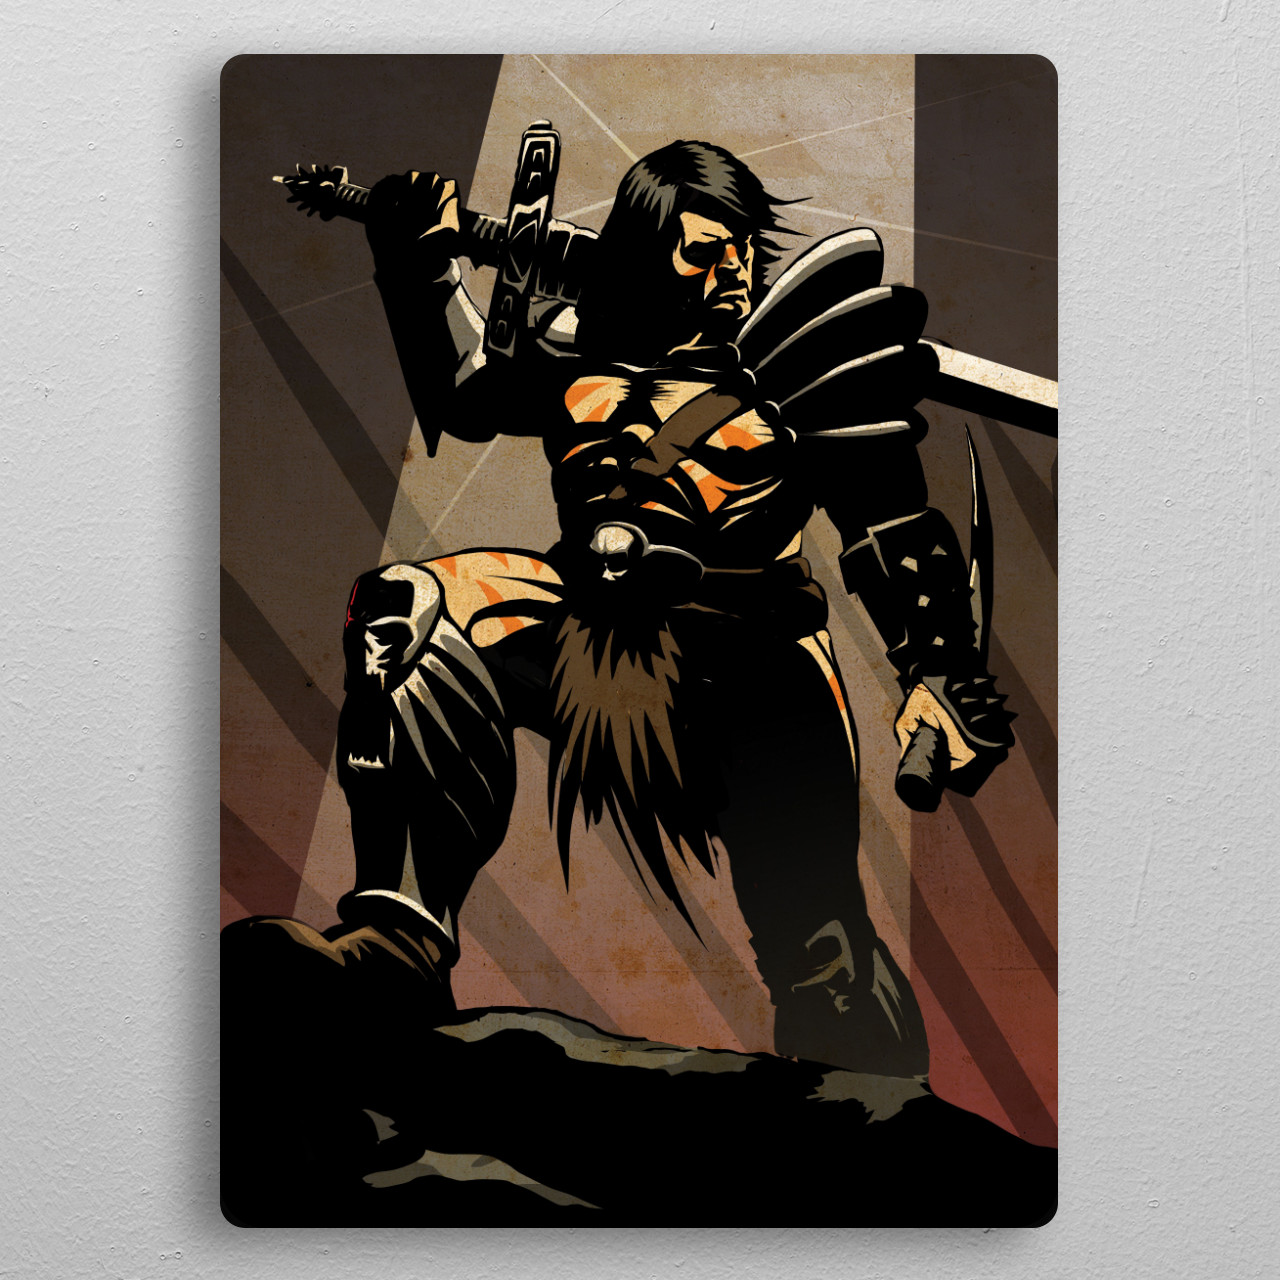 The Barbarian pocket-size metal print from Black box